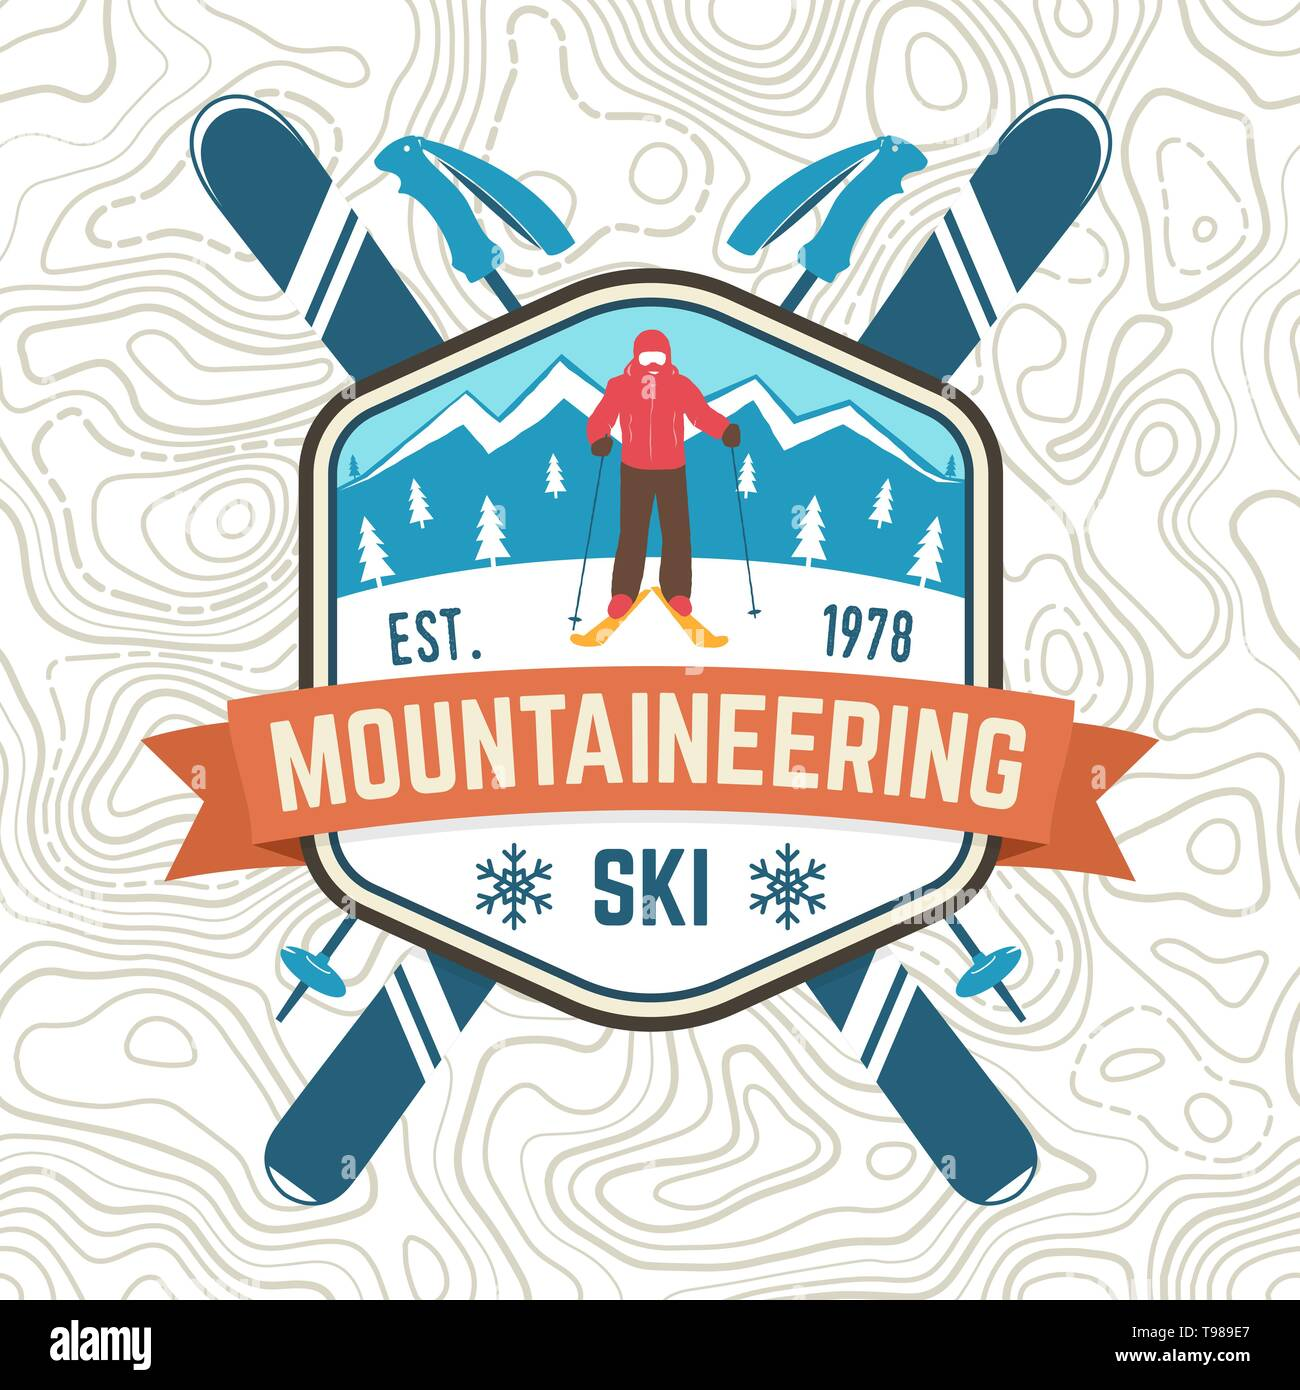 Mountaineering ski patch. Vector ski club retro badge. Concept for alpine club shirt, print, stamp. Vintage typography design with mountain silhouette and skier. Family vacation, activity or travel. Stock Vector